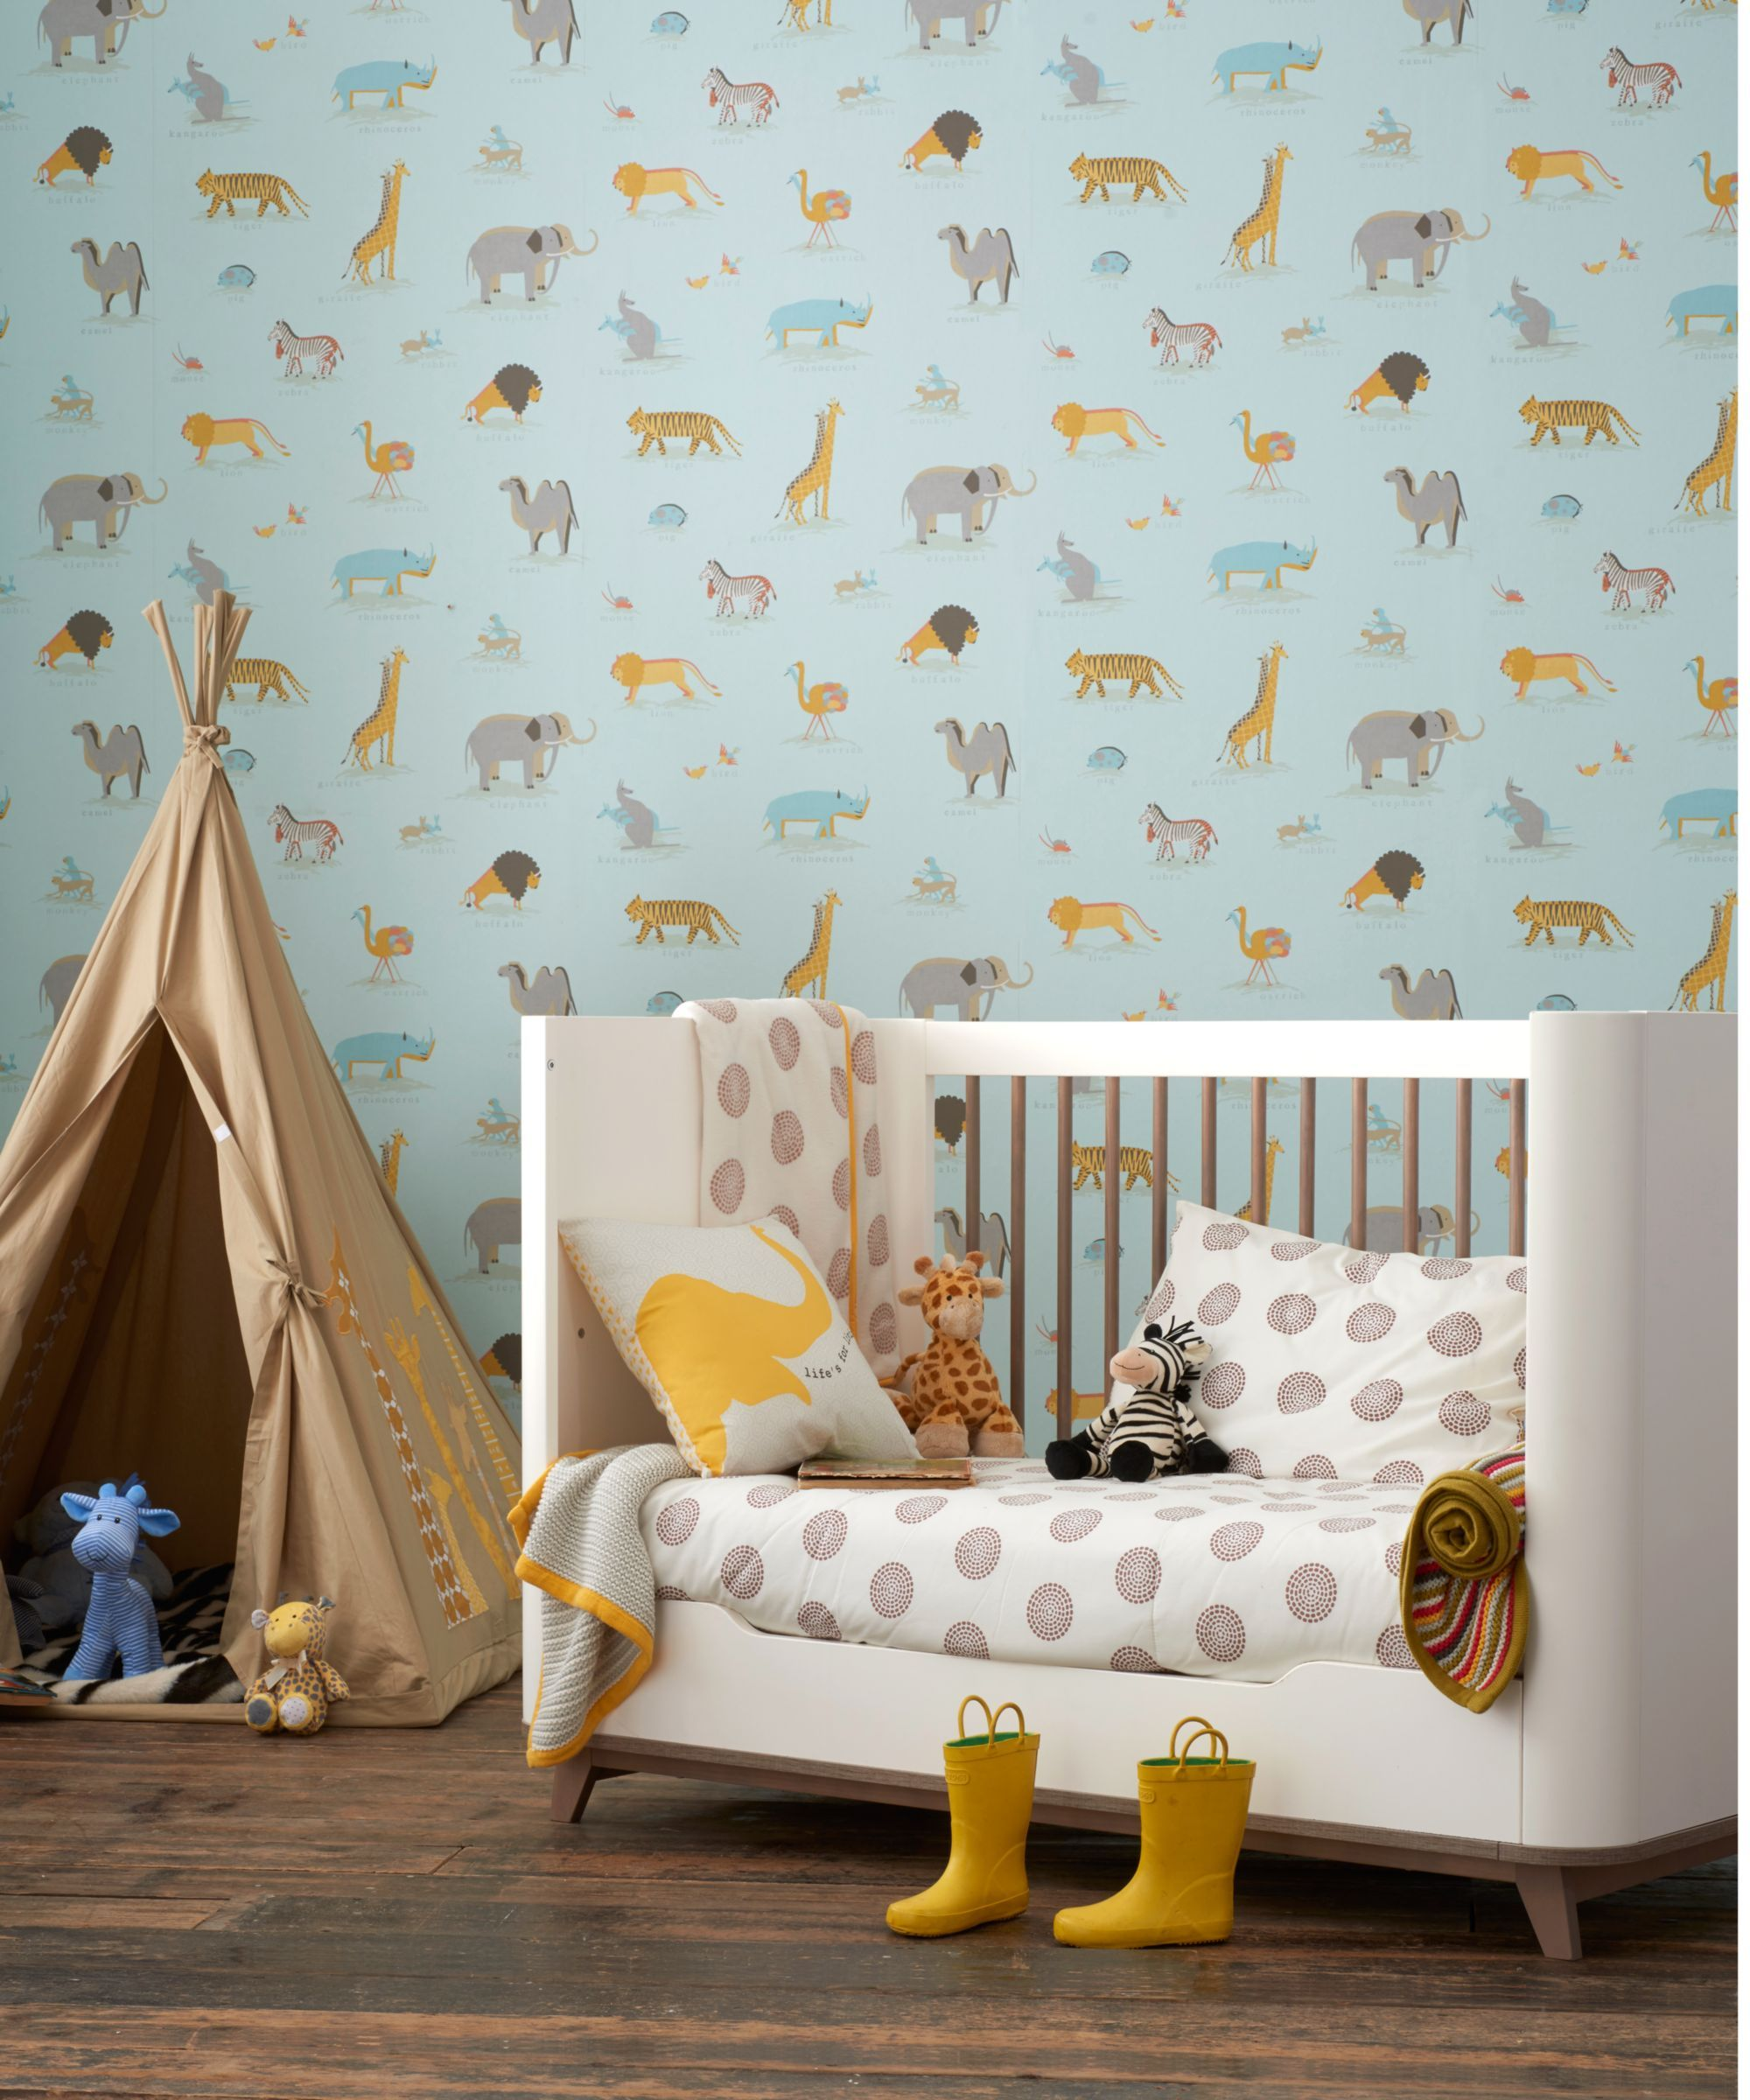 Mothercare Solna Cot Bed - cot beds - Mothercare  Childrens